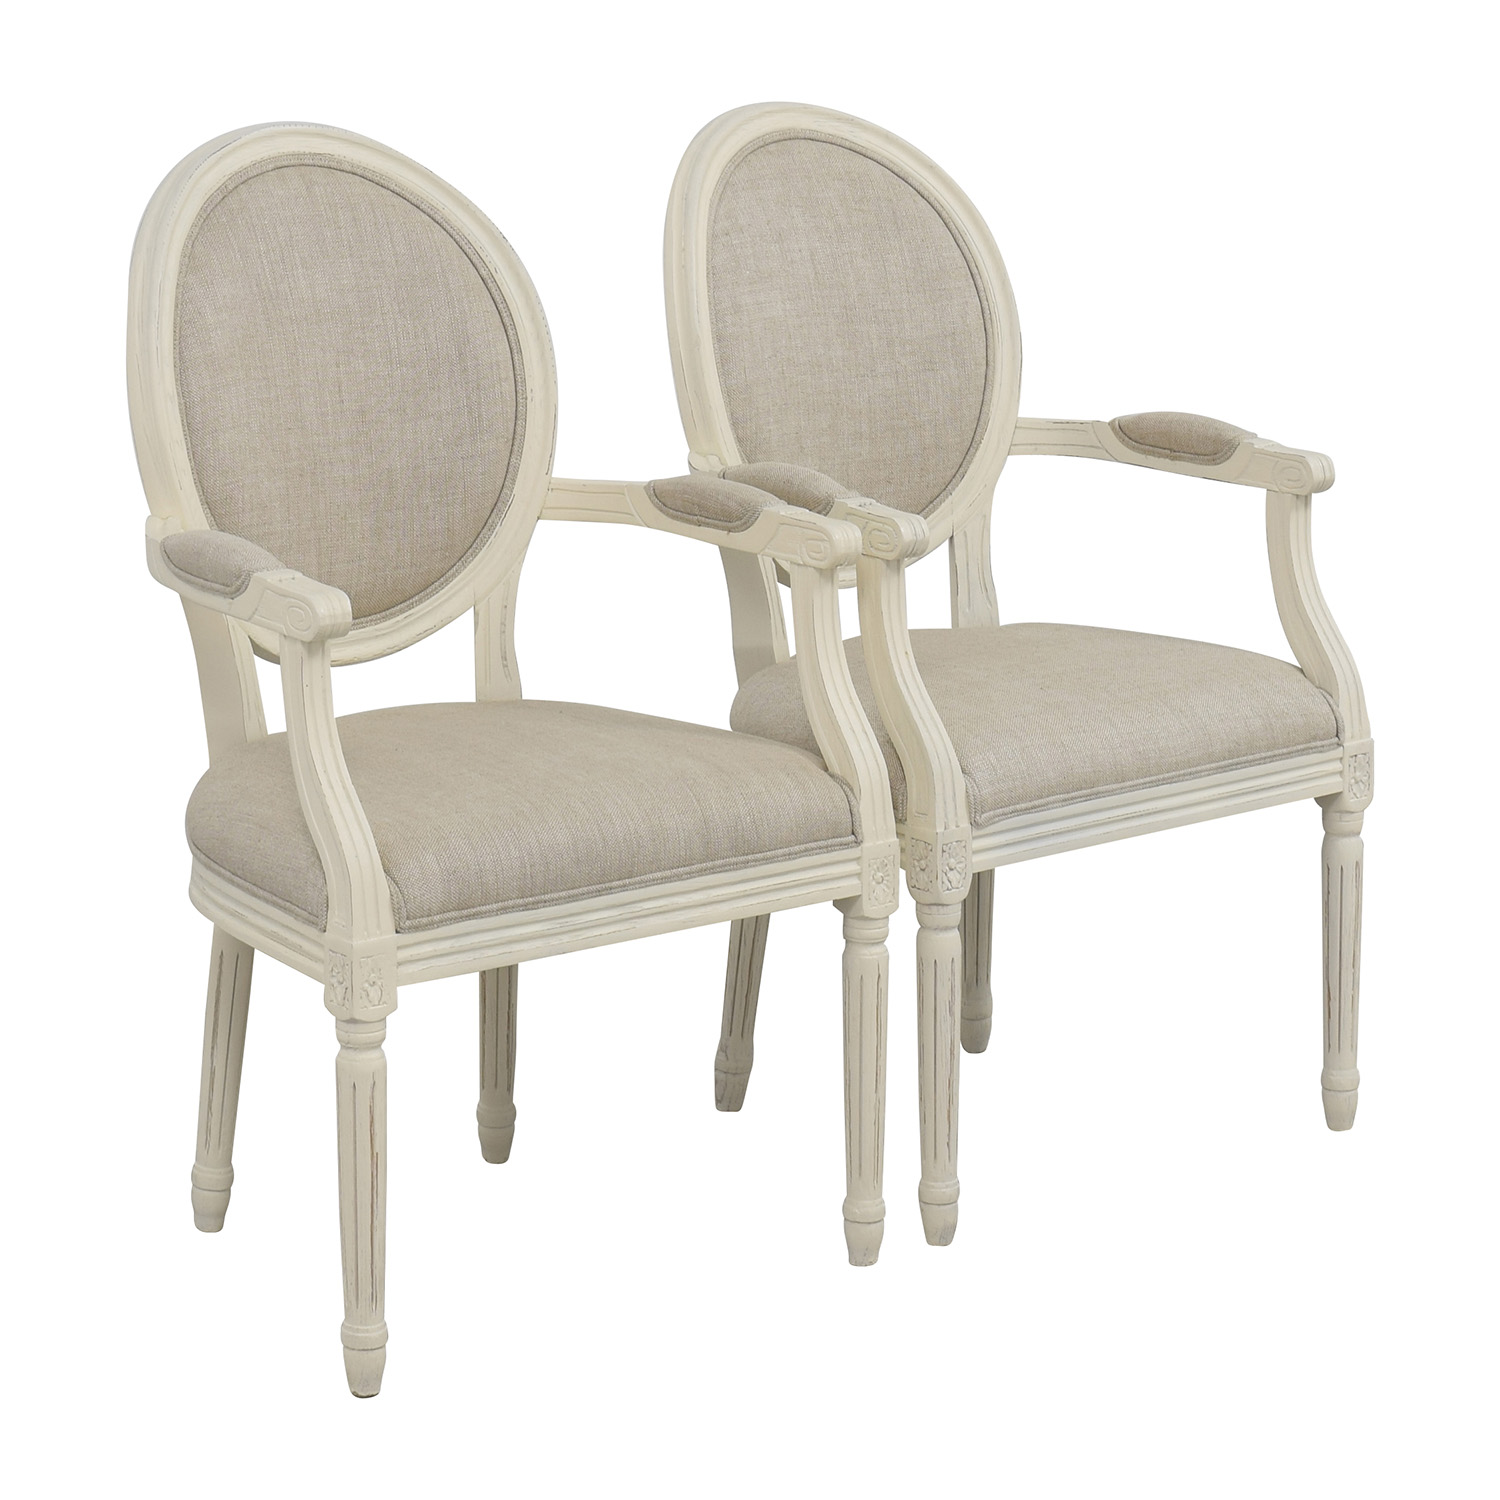 Used Restoration Hardware Outdoor Furniture peenmediacom : used restoration hardware beige french chairs from www.peenmedia.com size 1500 x 1500 jpeg 295kB